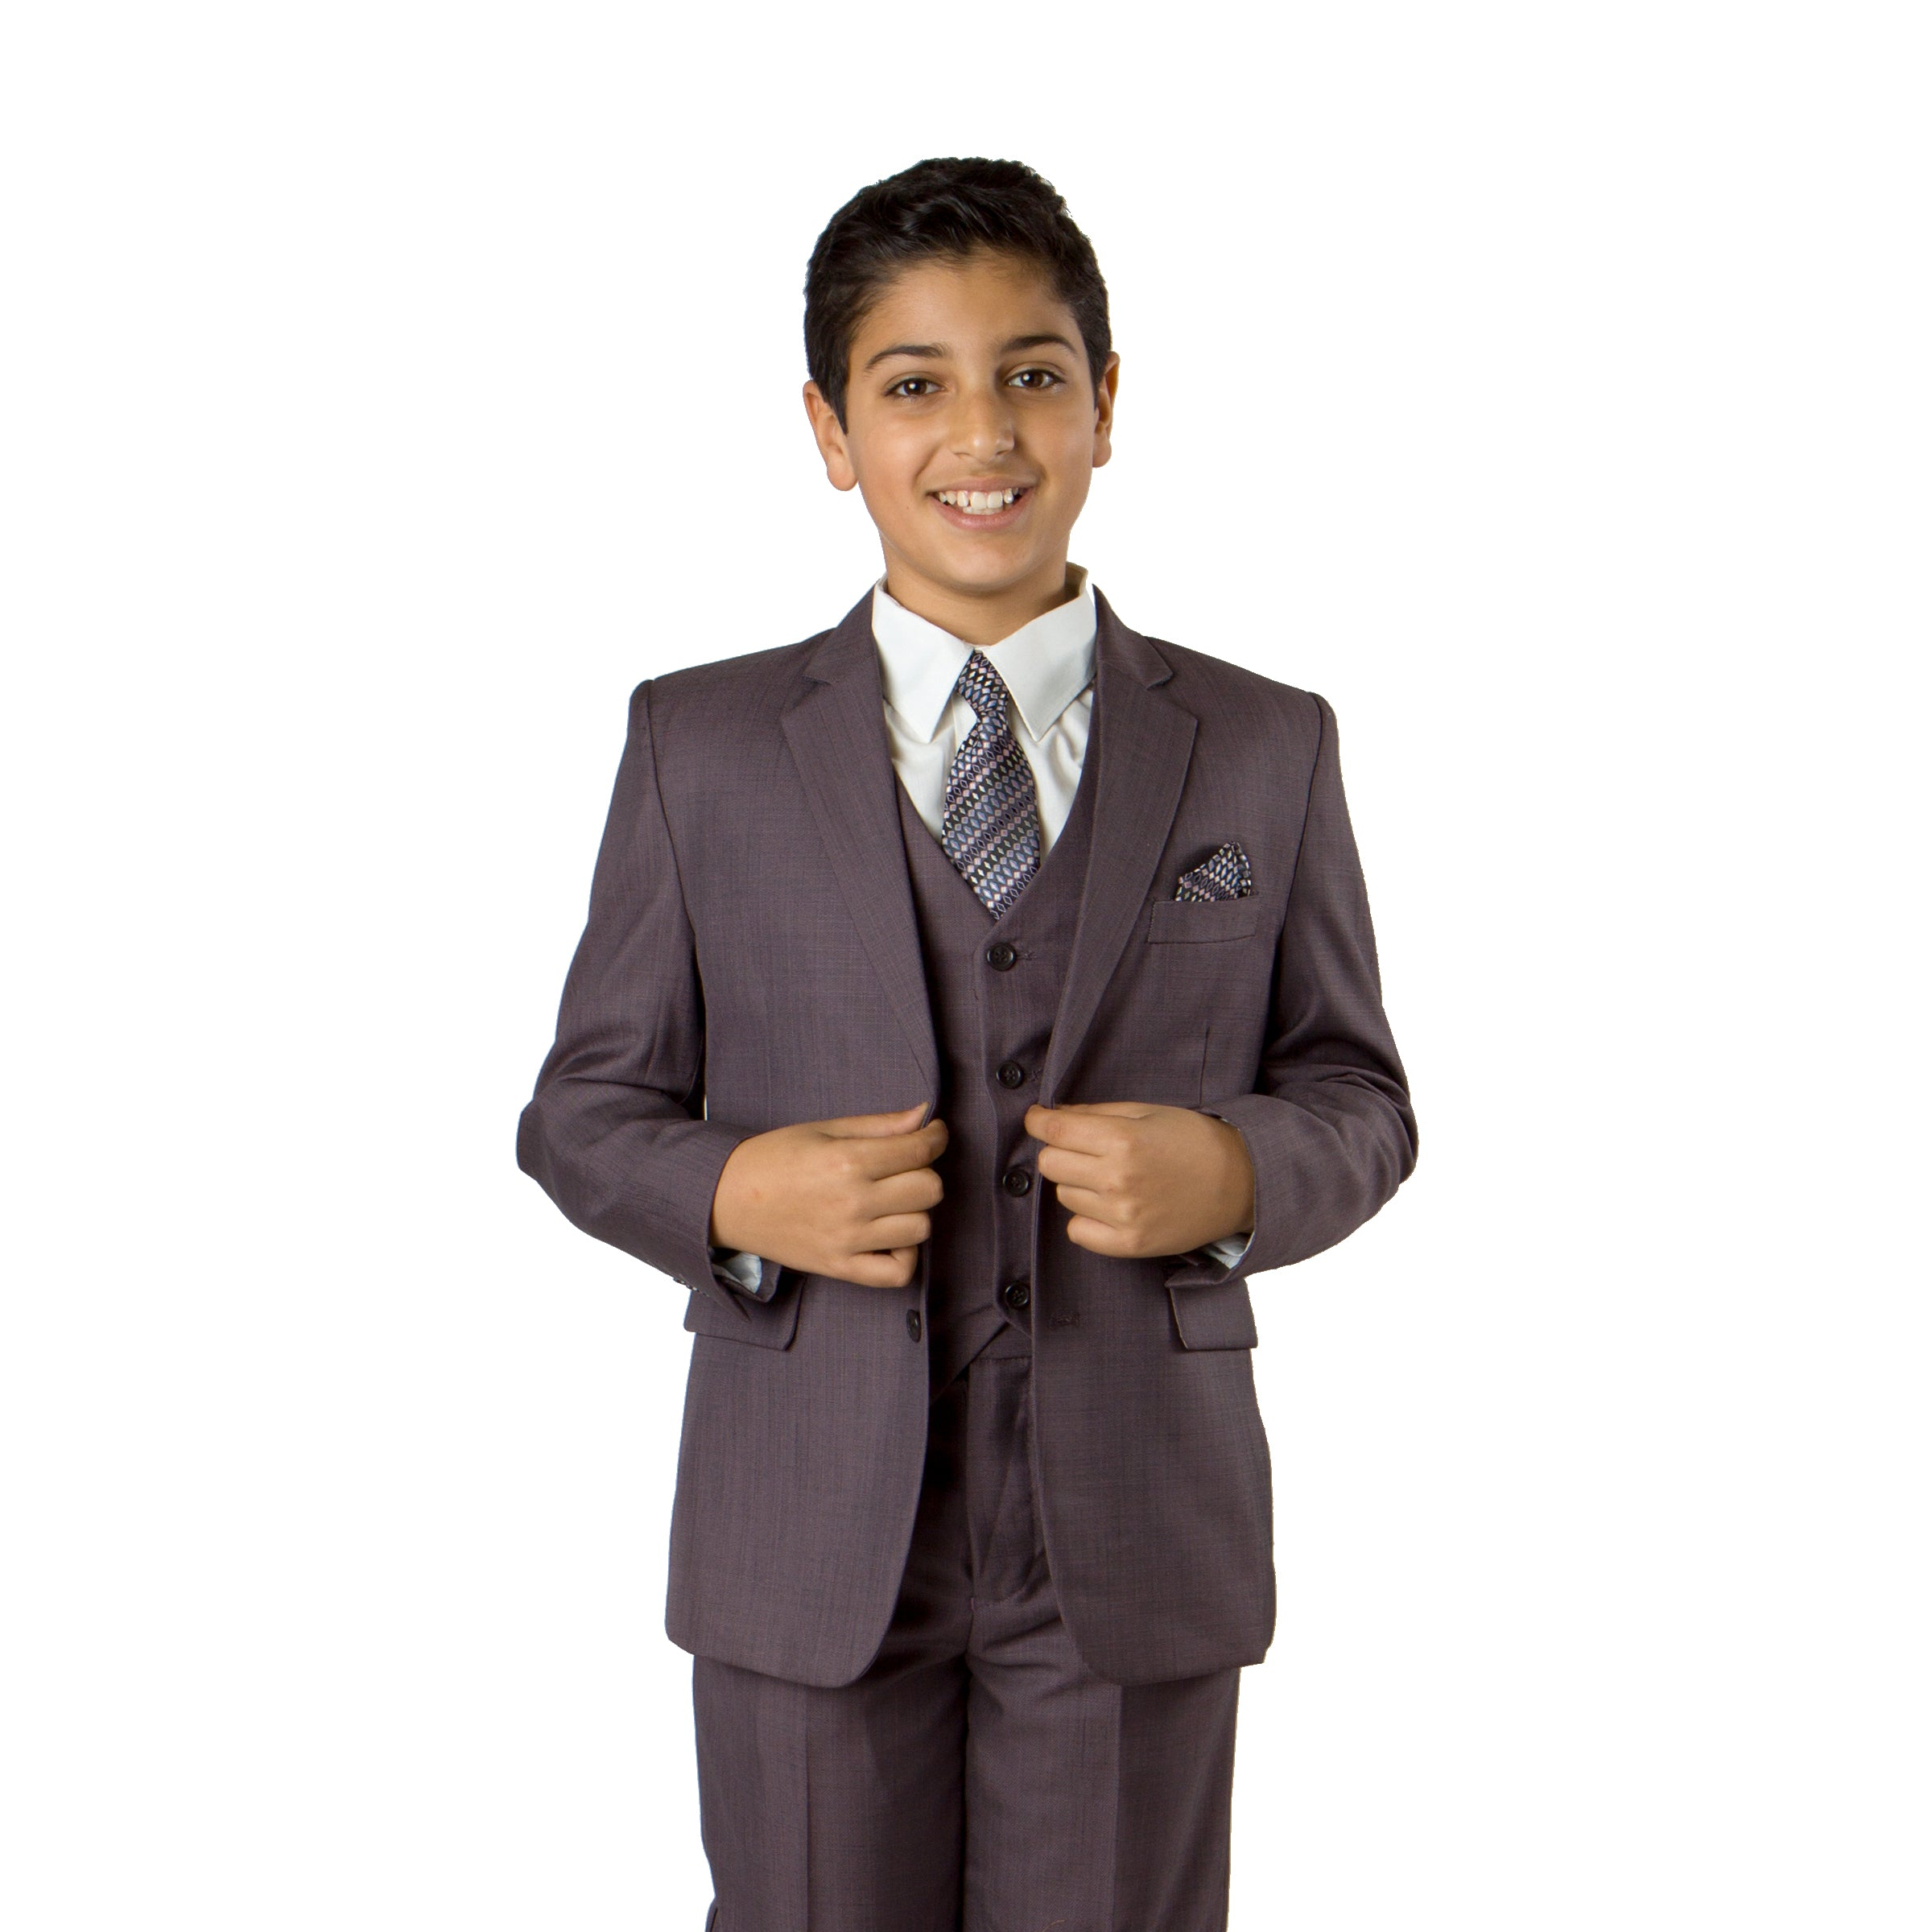 Tazio Lavender Formal Suits For Boys